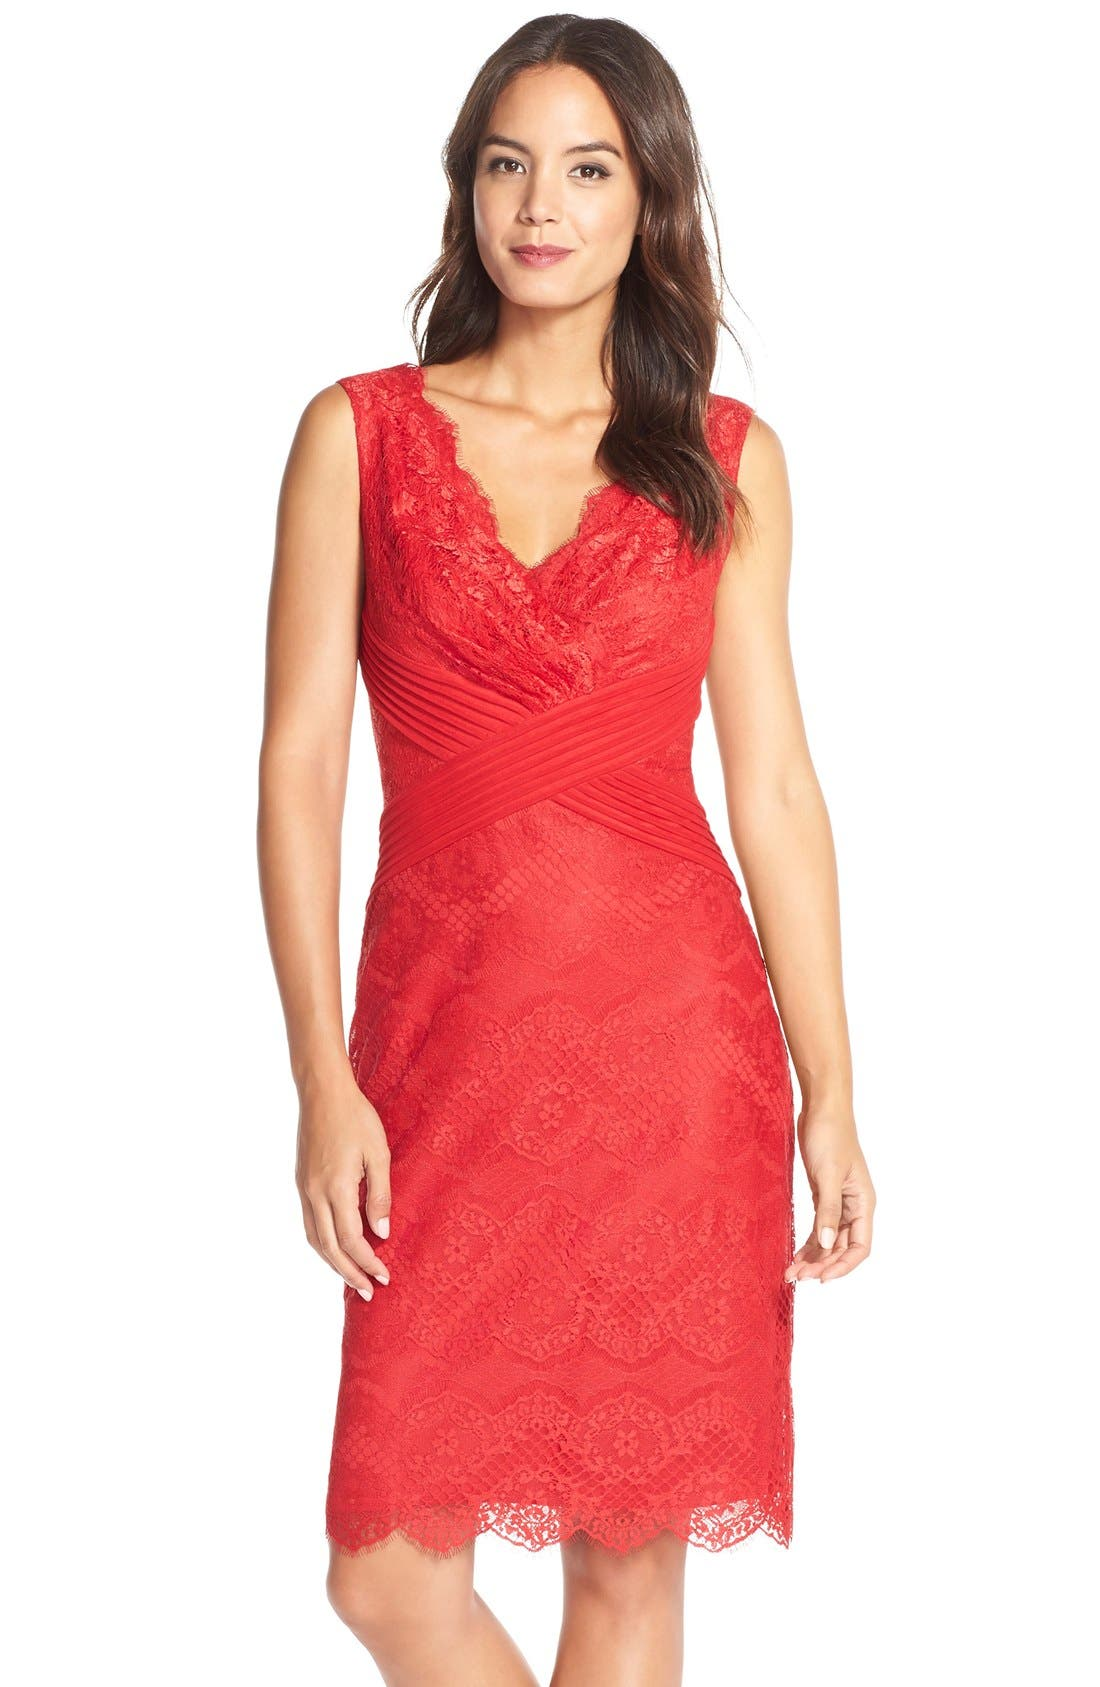 Alternate Image 1 Selected - Tadashi Shoji Mixed Media Sheath Dress (Regular & Petite)